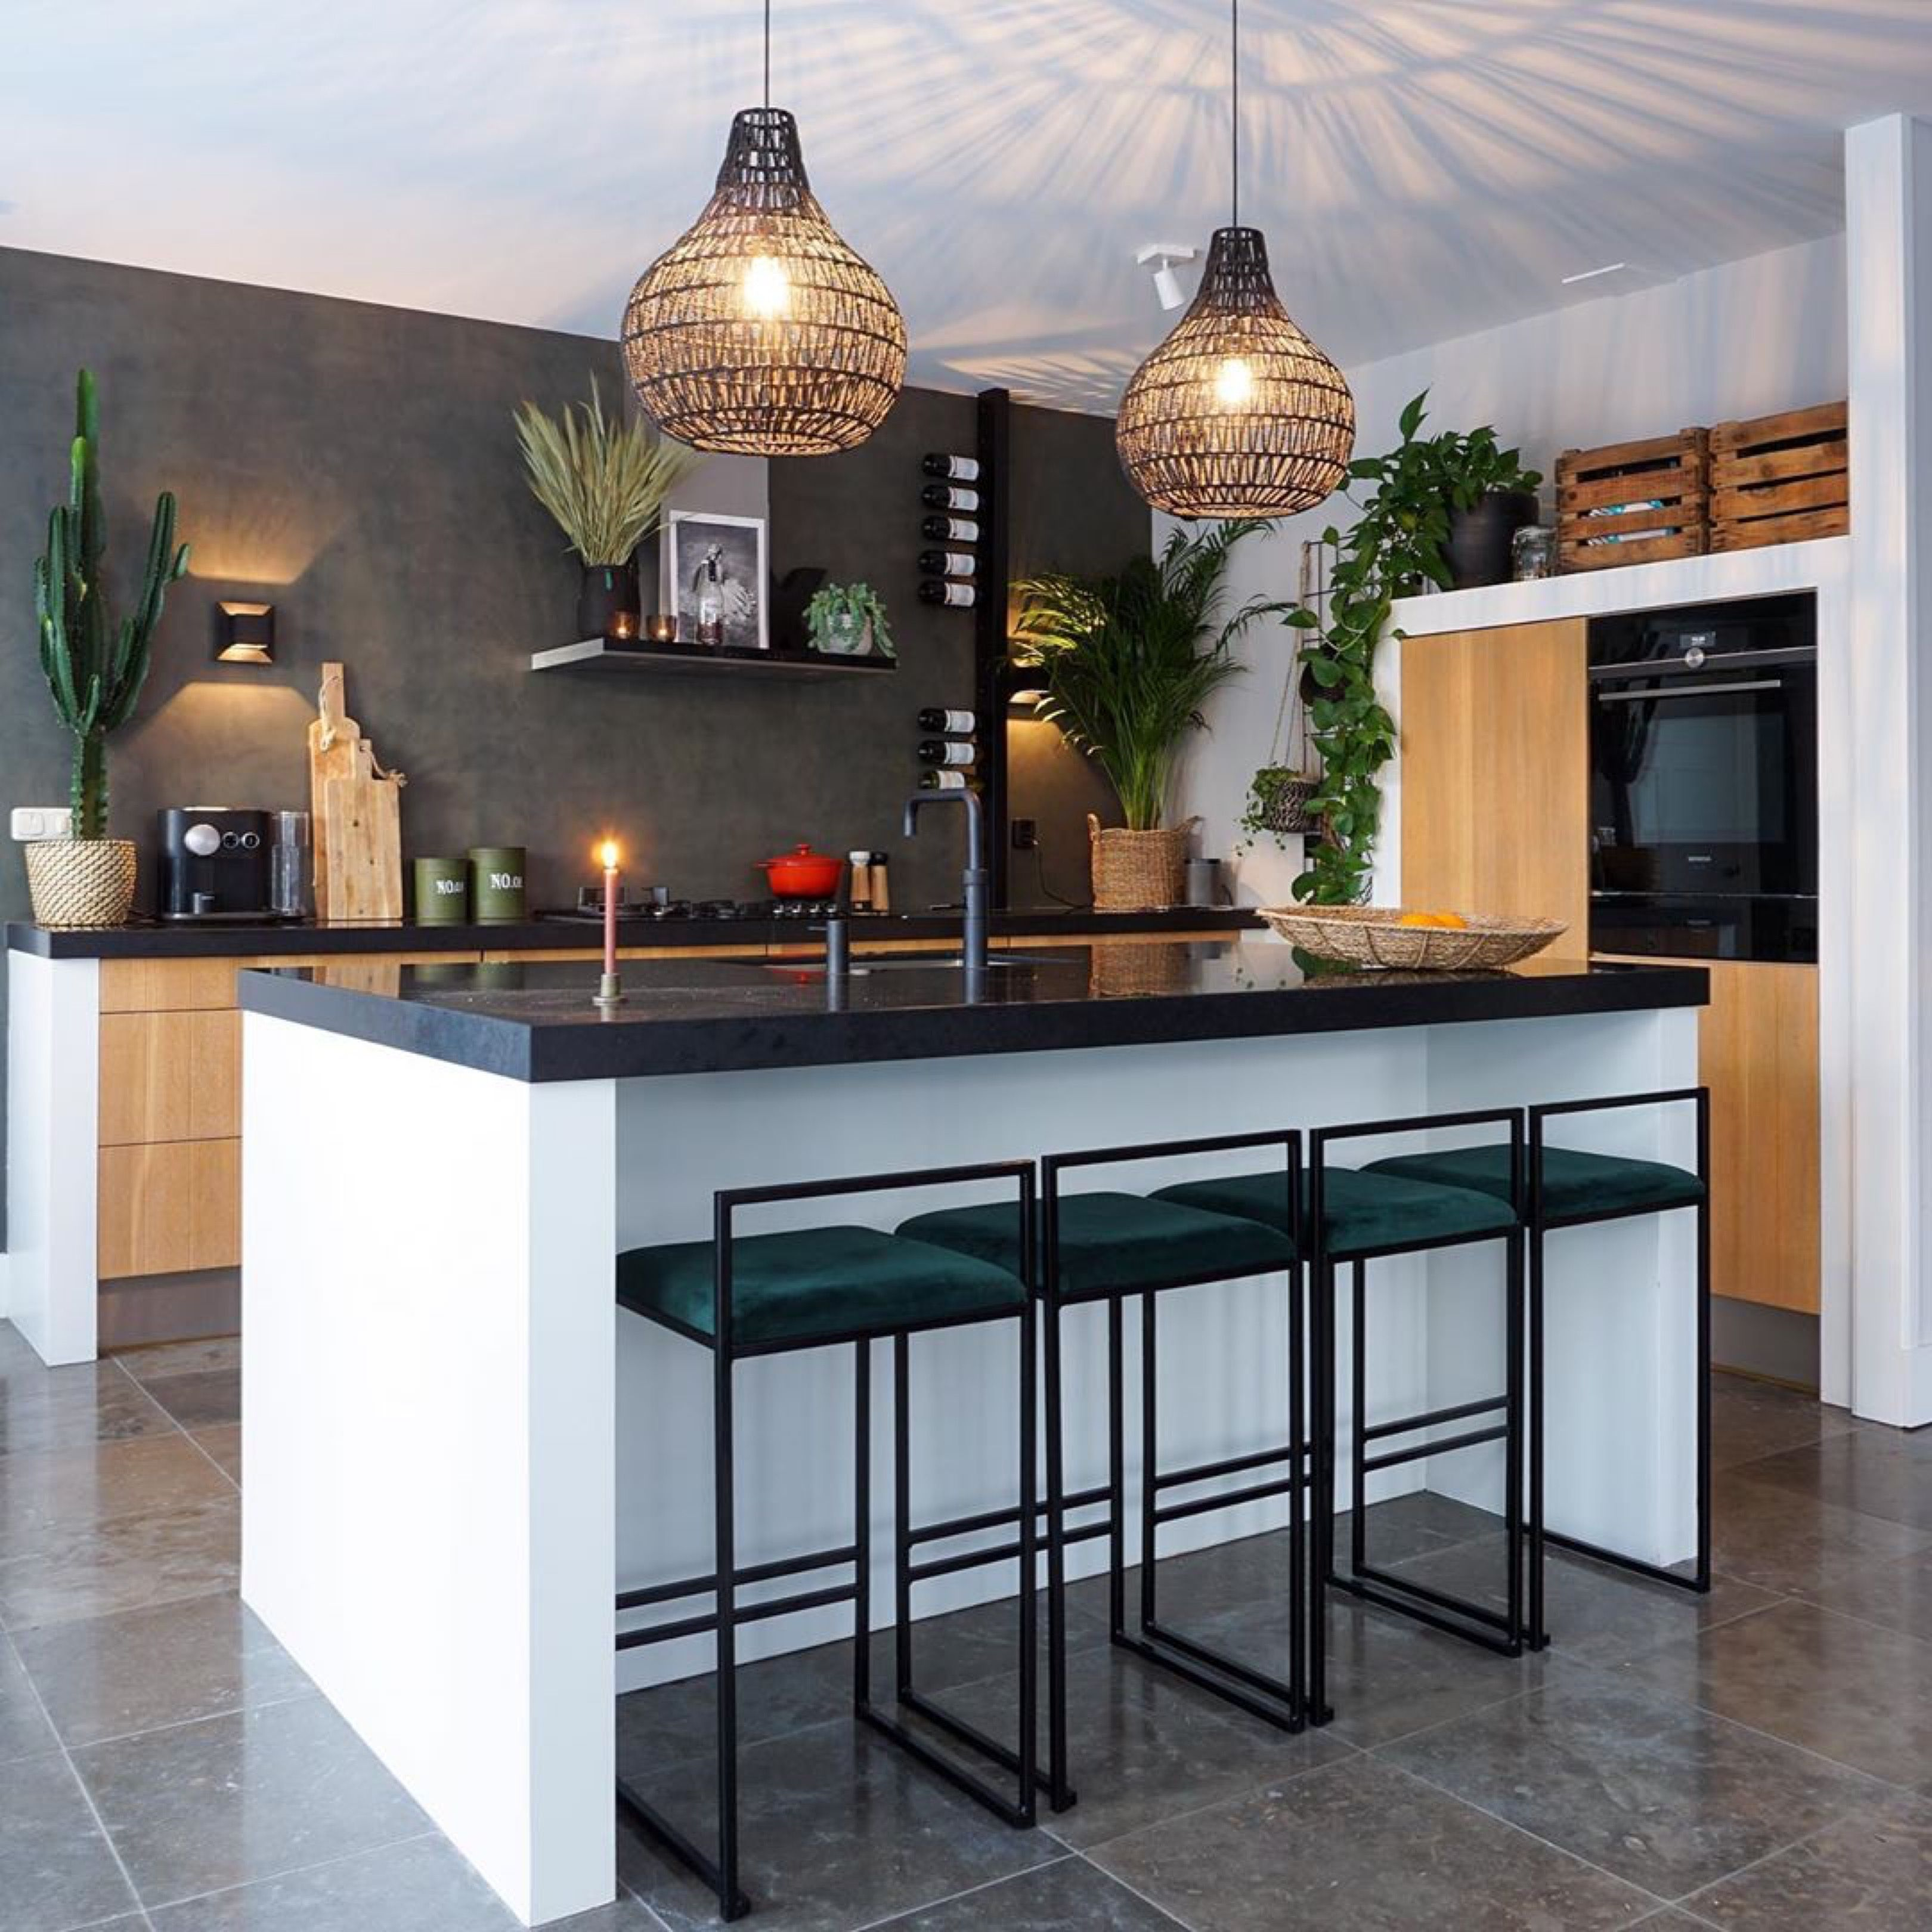 Kitchen isle with Freja bar chairs from by Crea